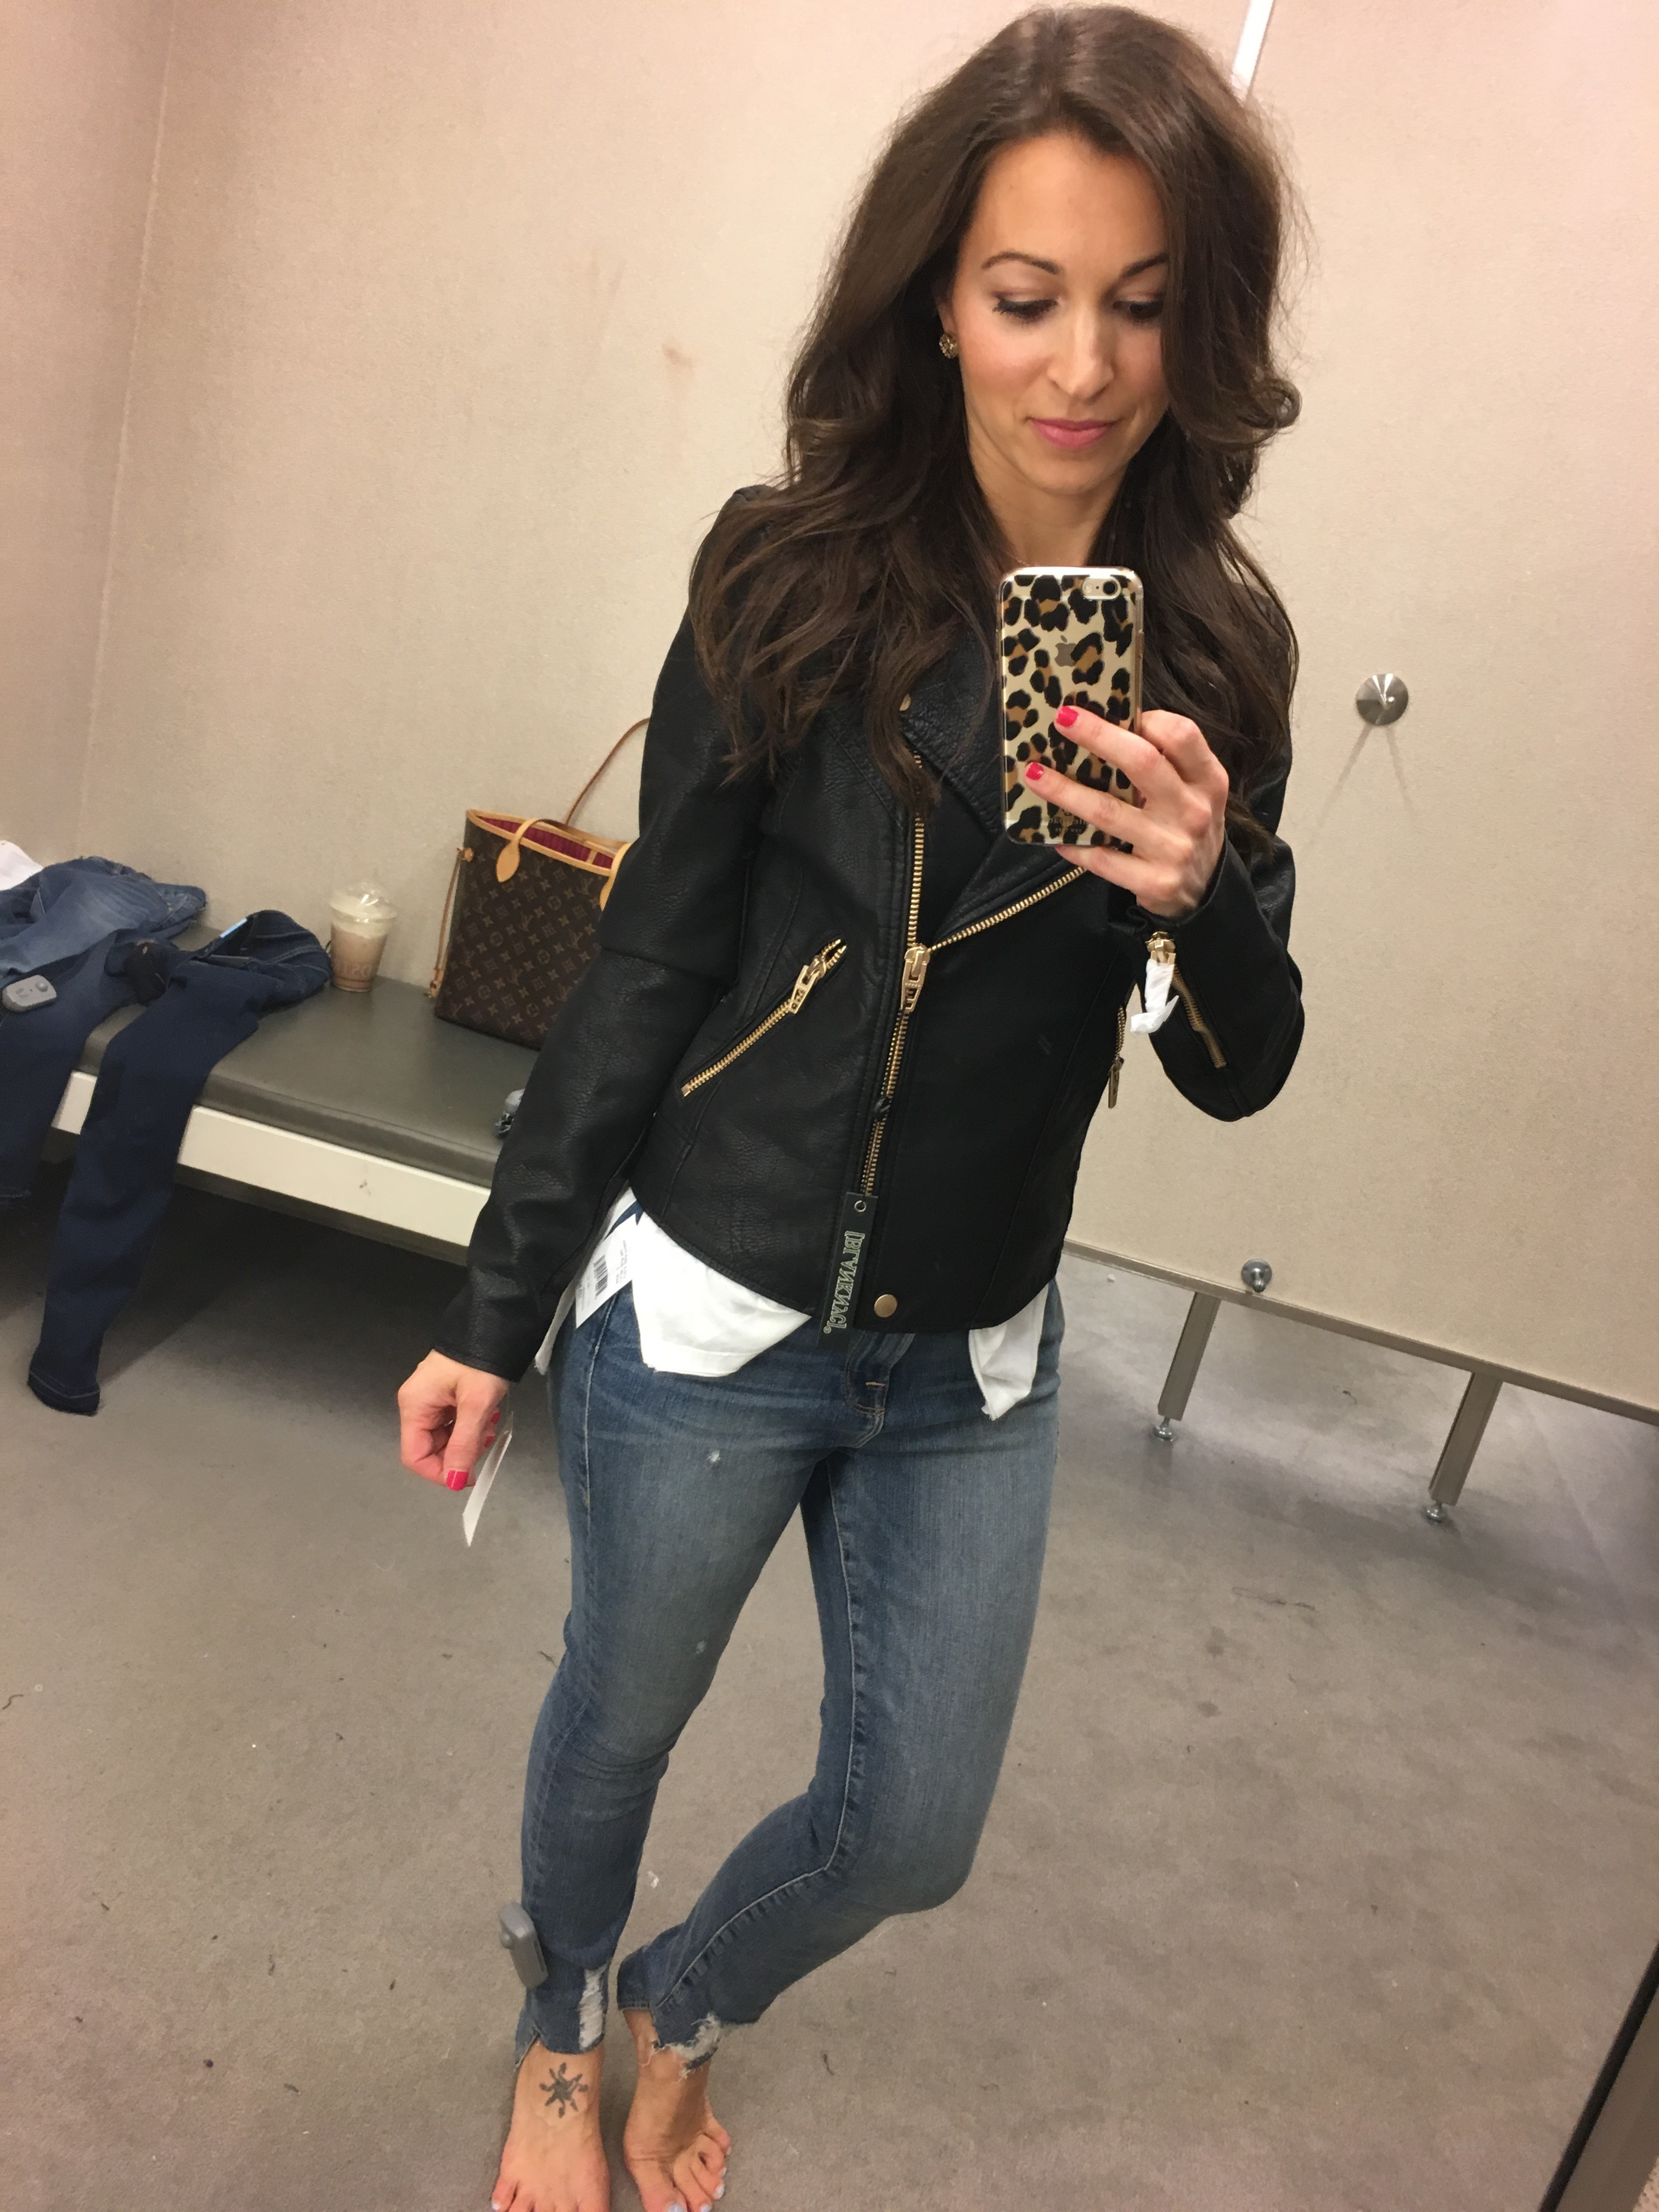 c12febd726a Nordstrom Anniversary sale dressing room session and black faux leather  jacket